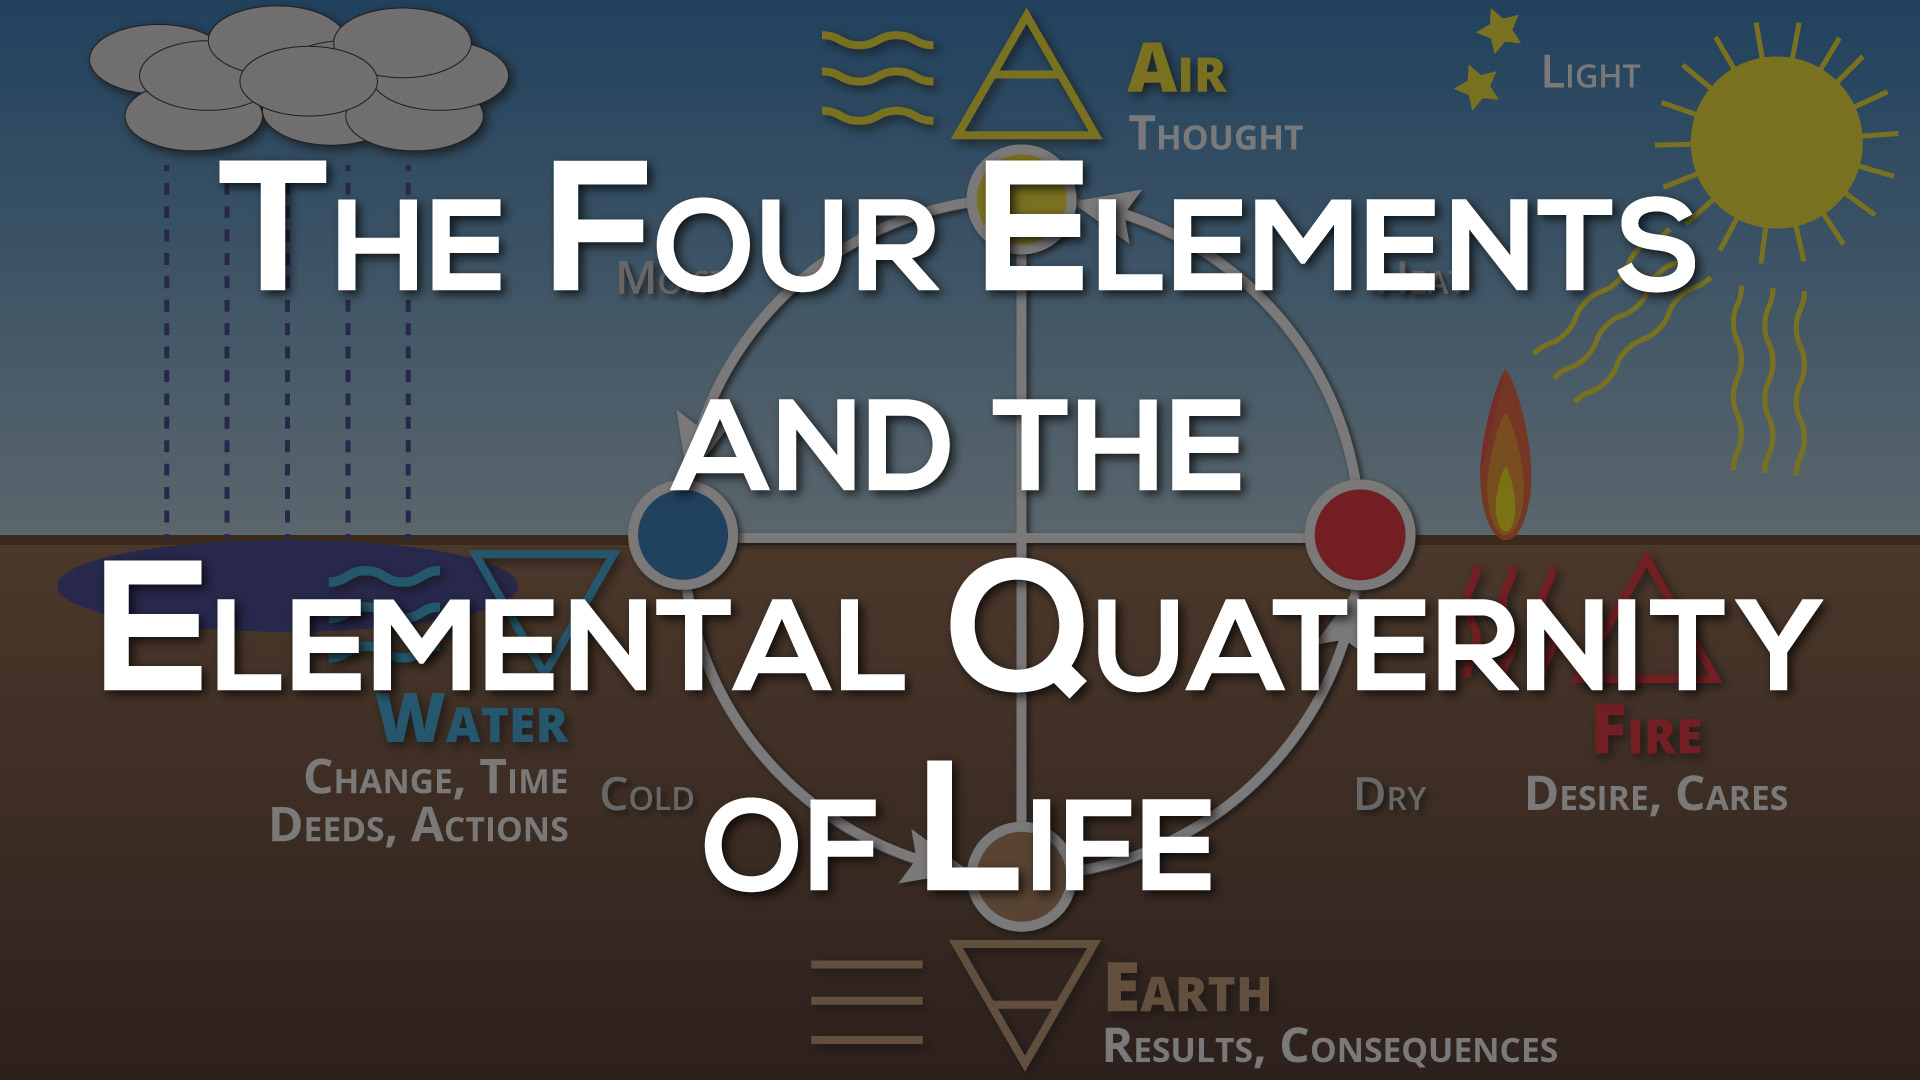 The Four Elements And The Elemental Quaternity Of Life